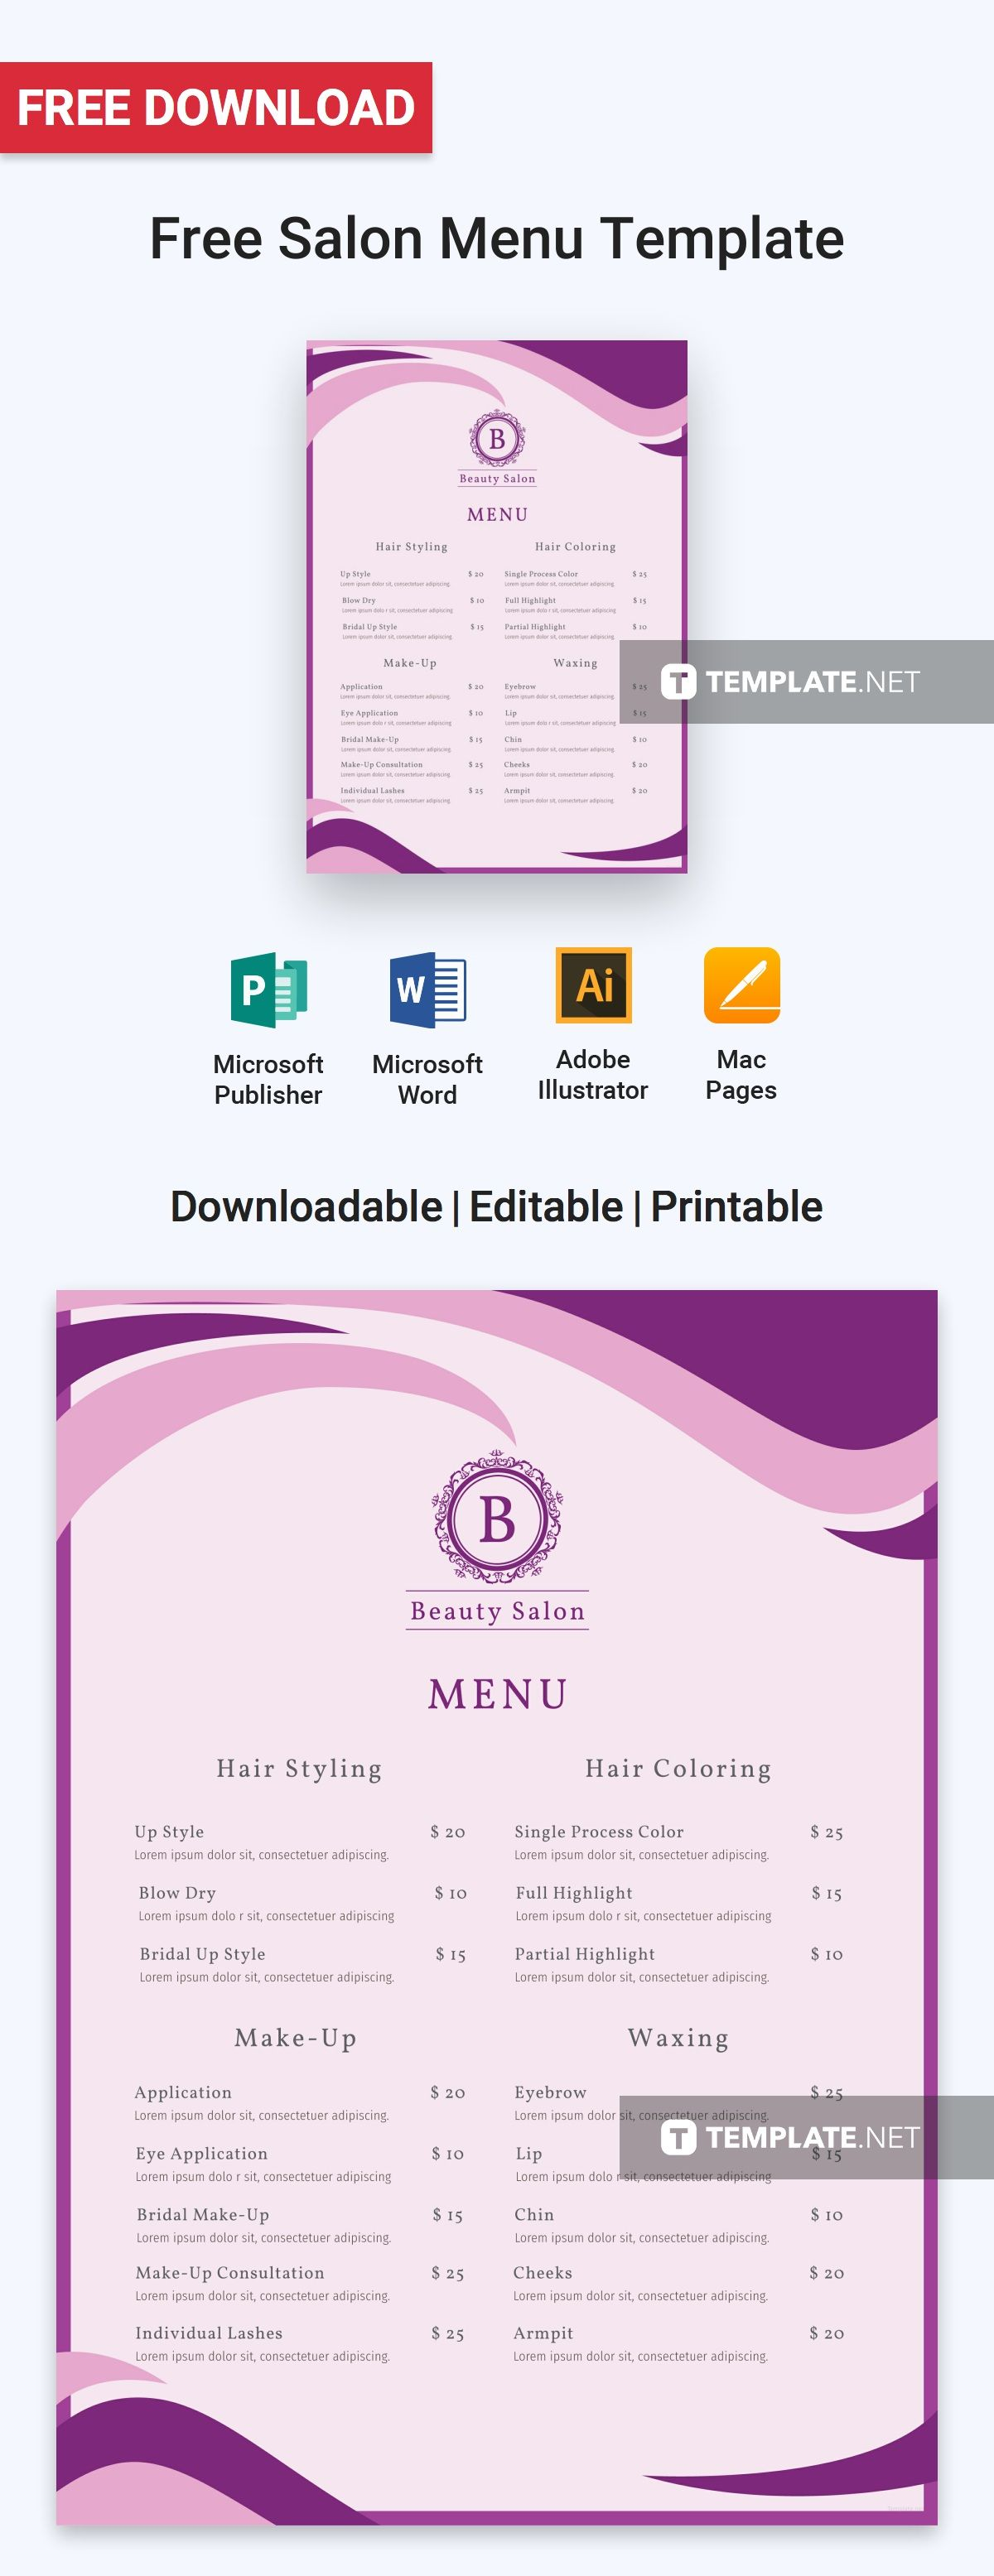 free salon menu menu templates designs 2019 pinterest menu